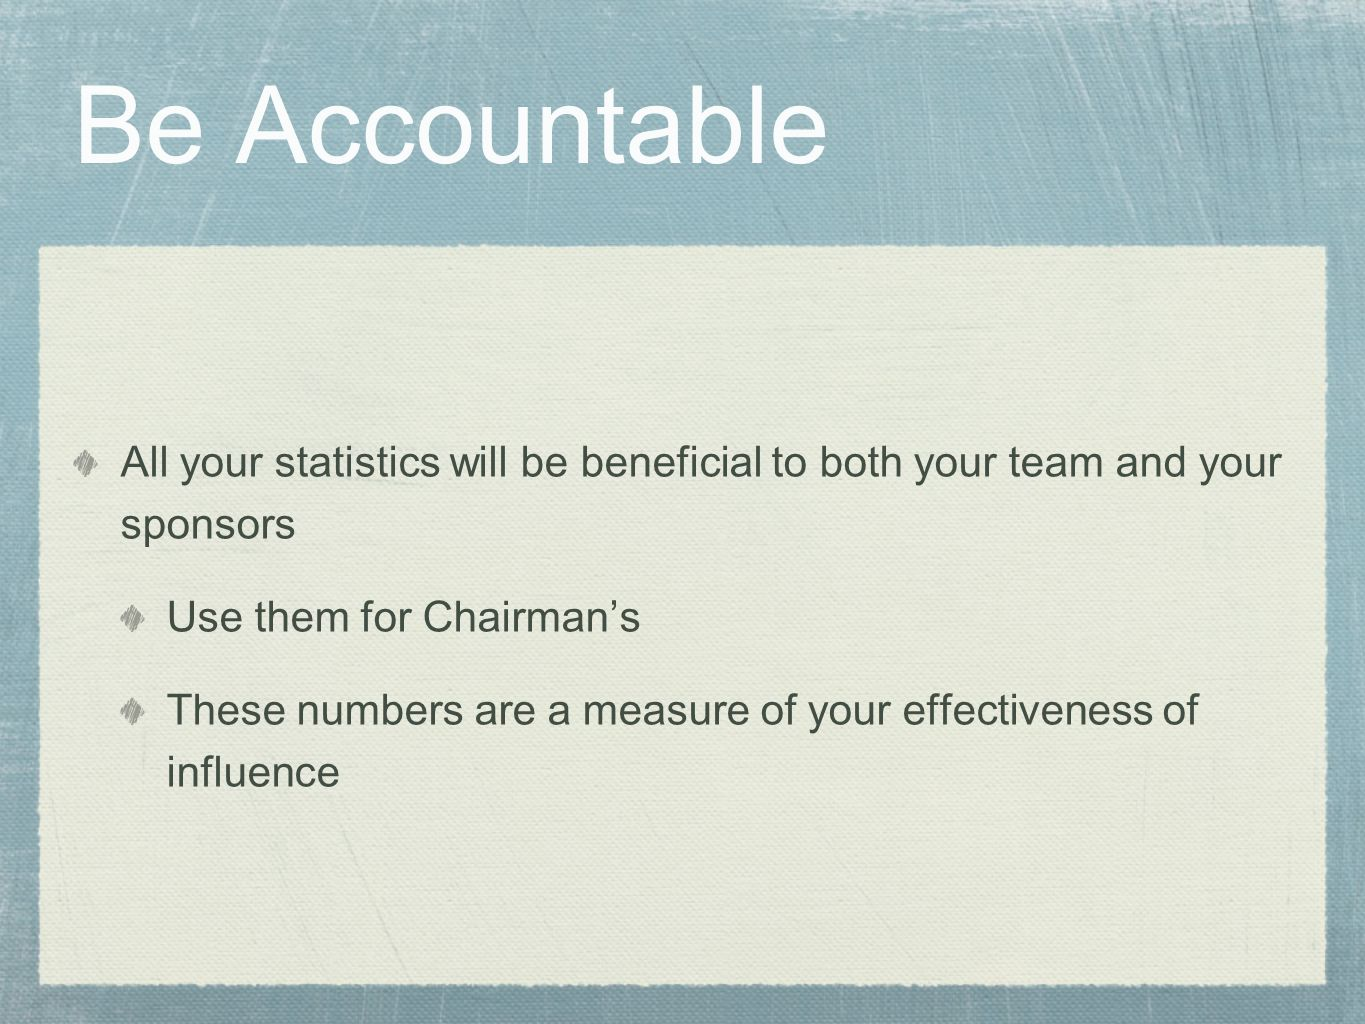 Be Accountable All your statistics will be beneficial to both your team and your sponsors Use them for Chairman's These numbers are a measure of your effectiveness of influence